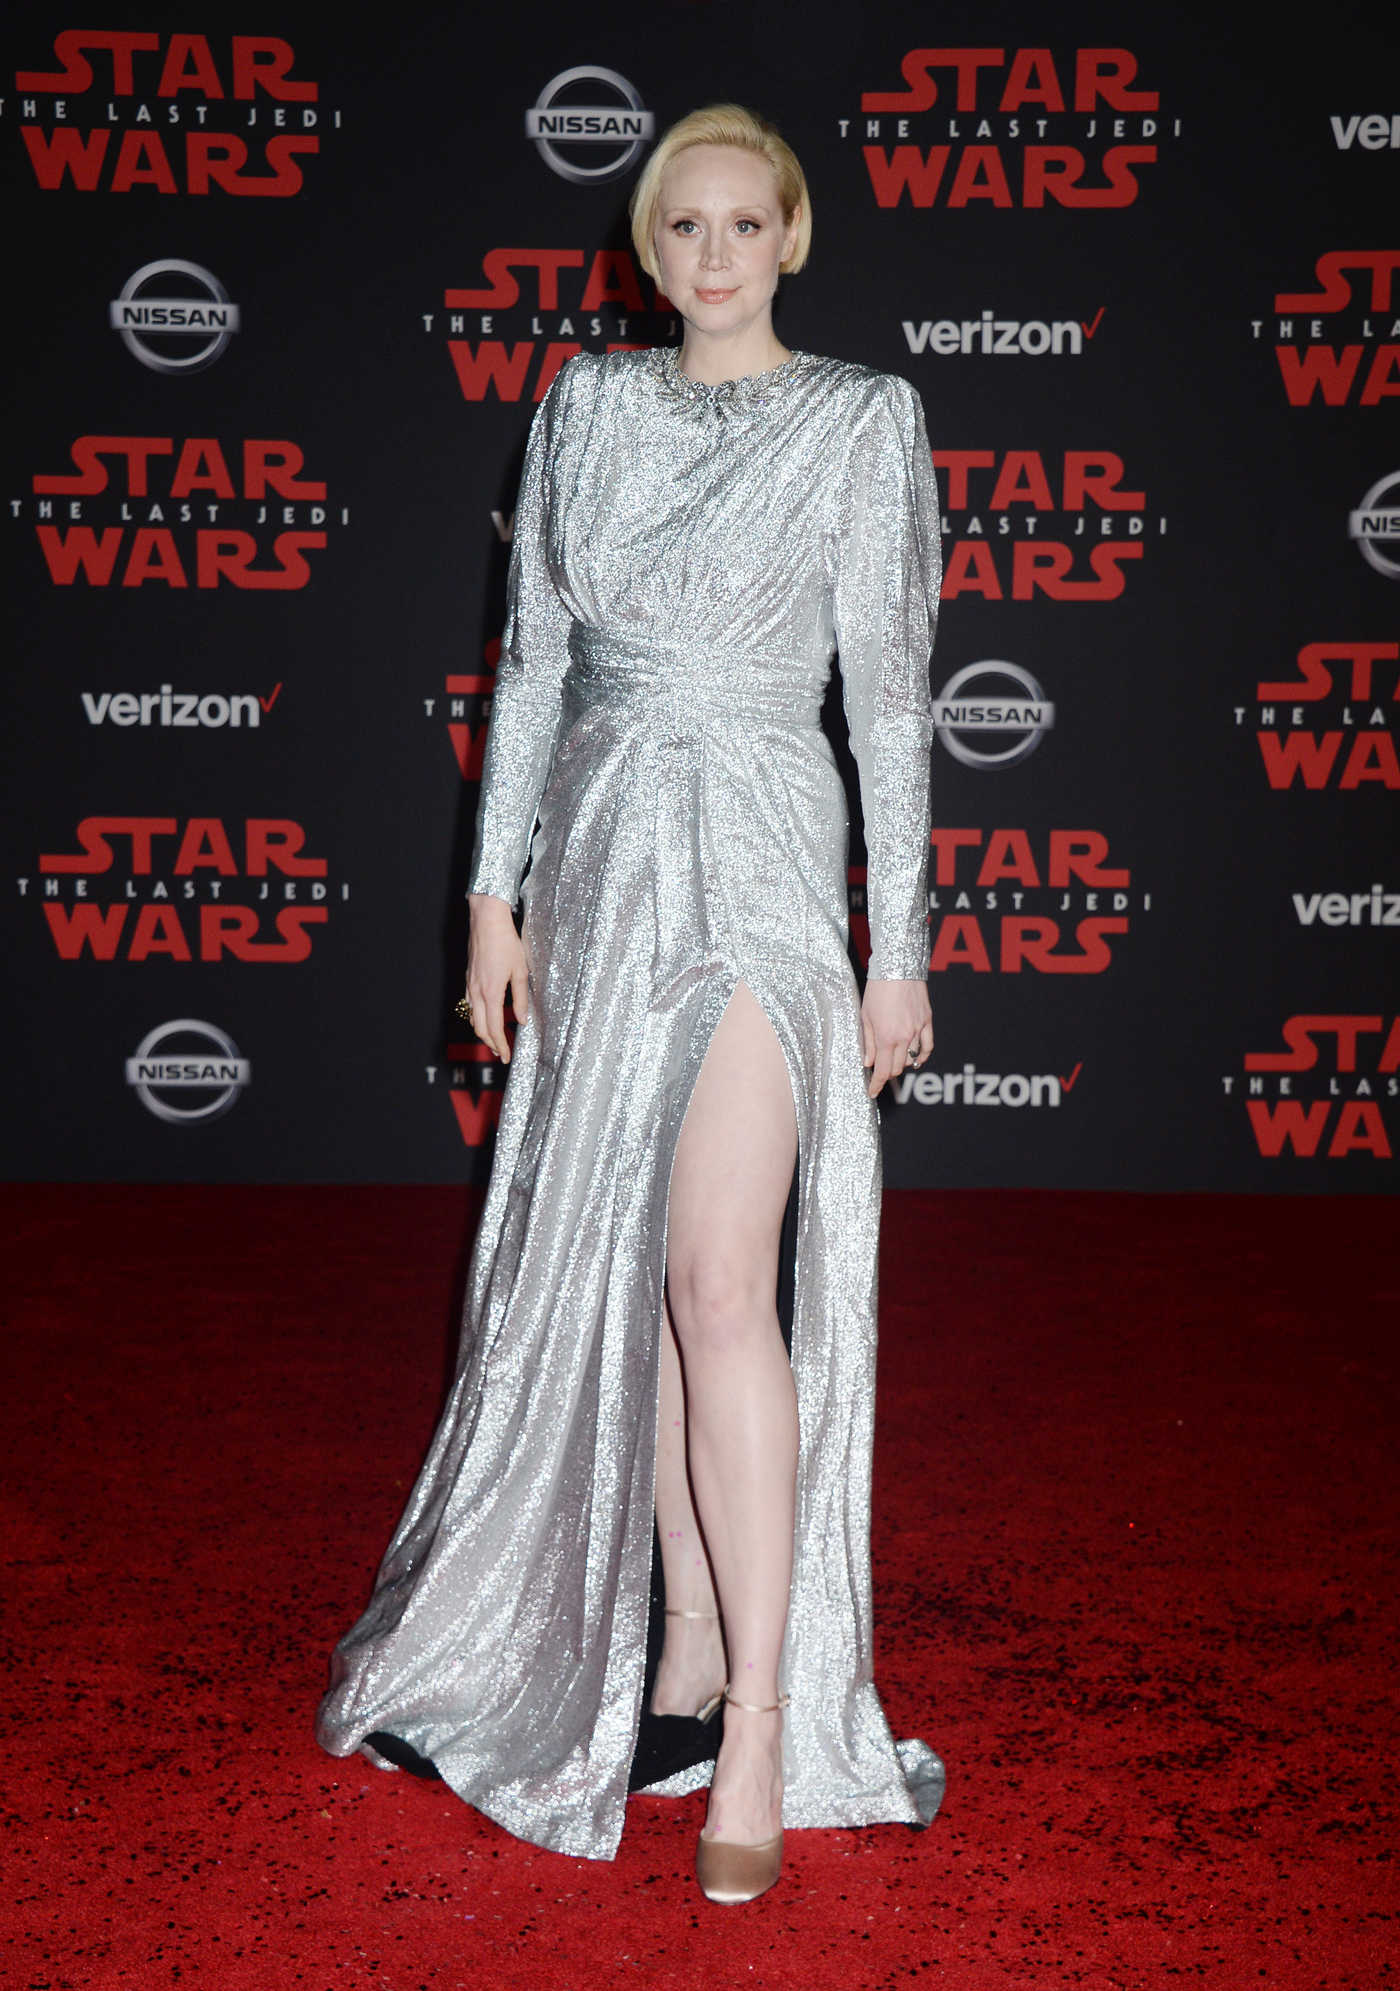 Gwendoline Christie at the Star Wars: The Last Jedi Premiere in Los Angeles 12/09/2017